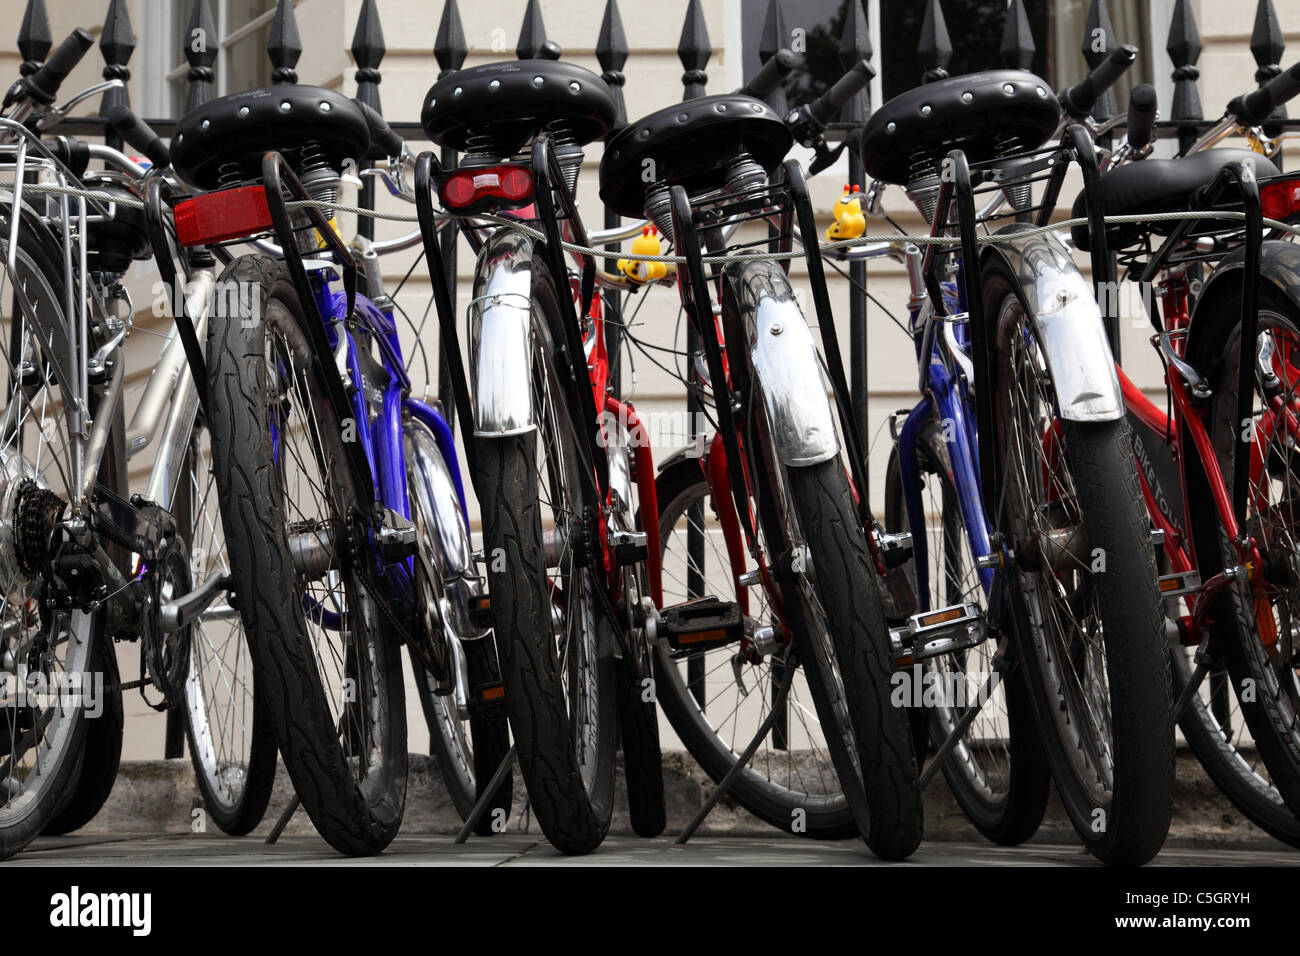 Cycles on a street in Westminster, London, England, U.K. - Stock Image